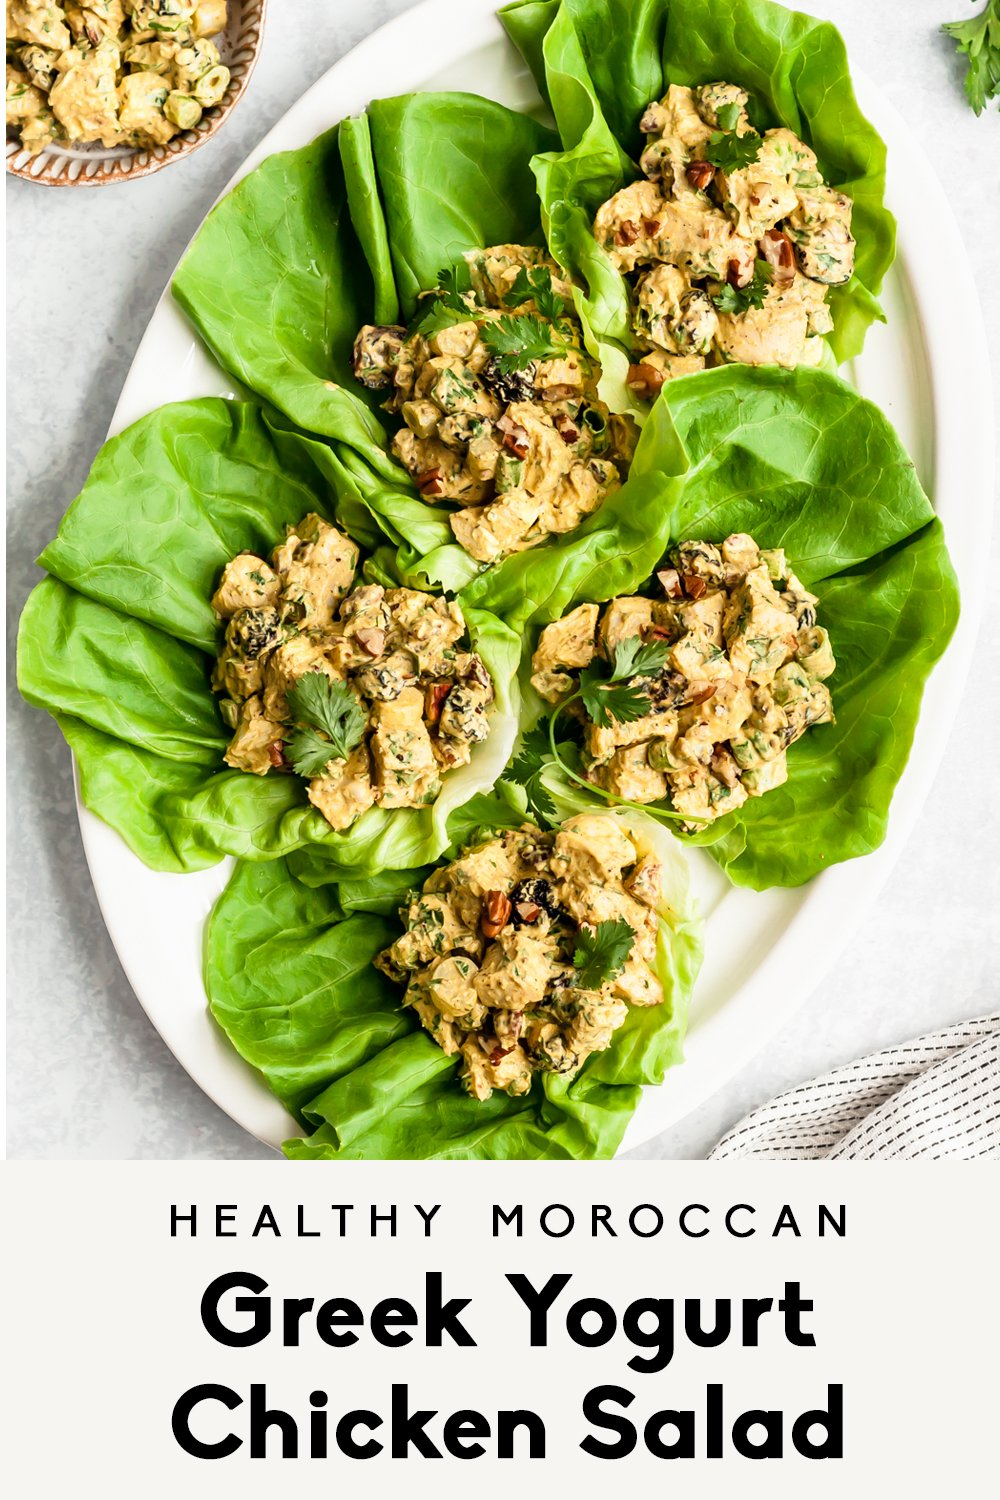 healthy greek yogurt chicken salad in lettuce wraps with text overlay